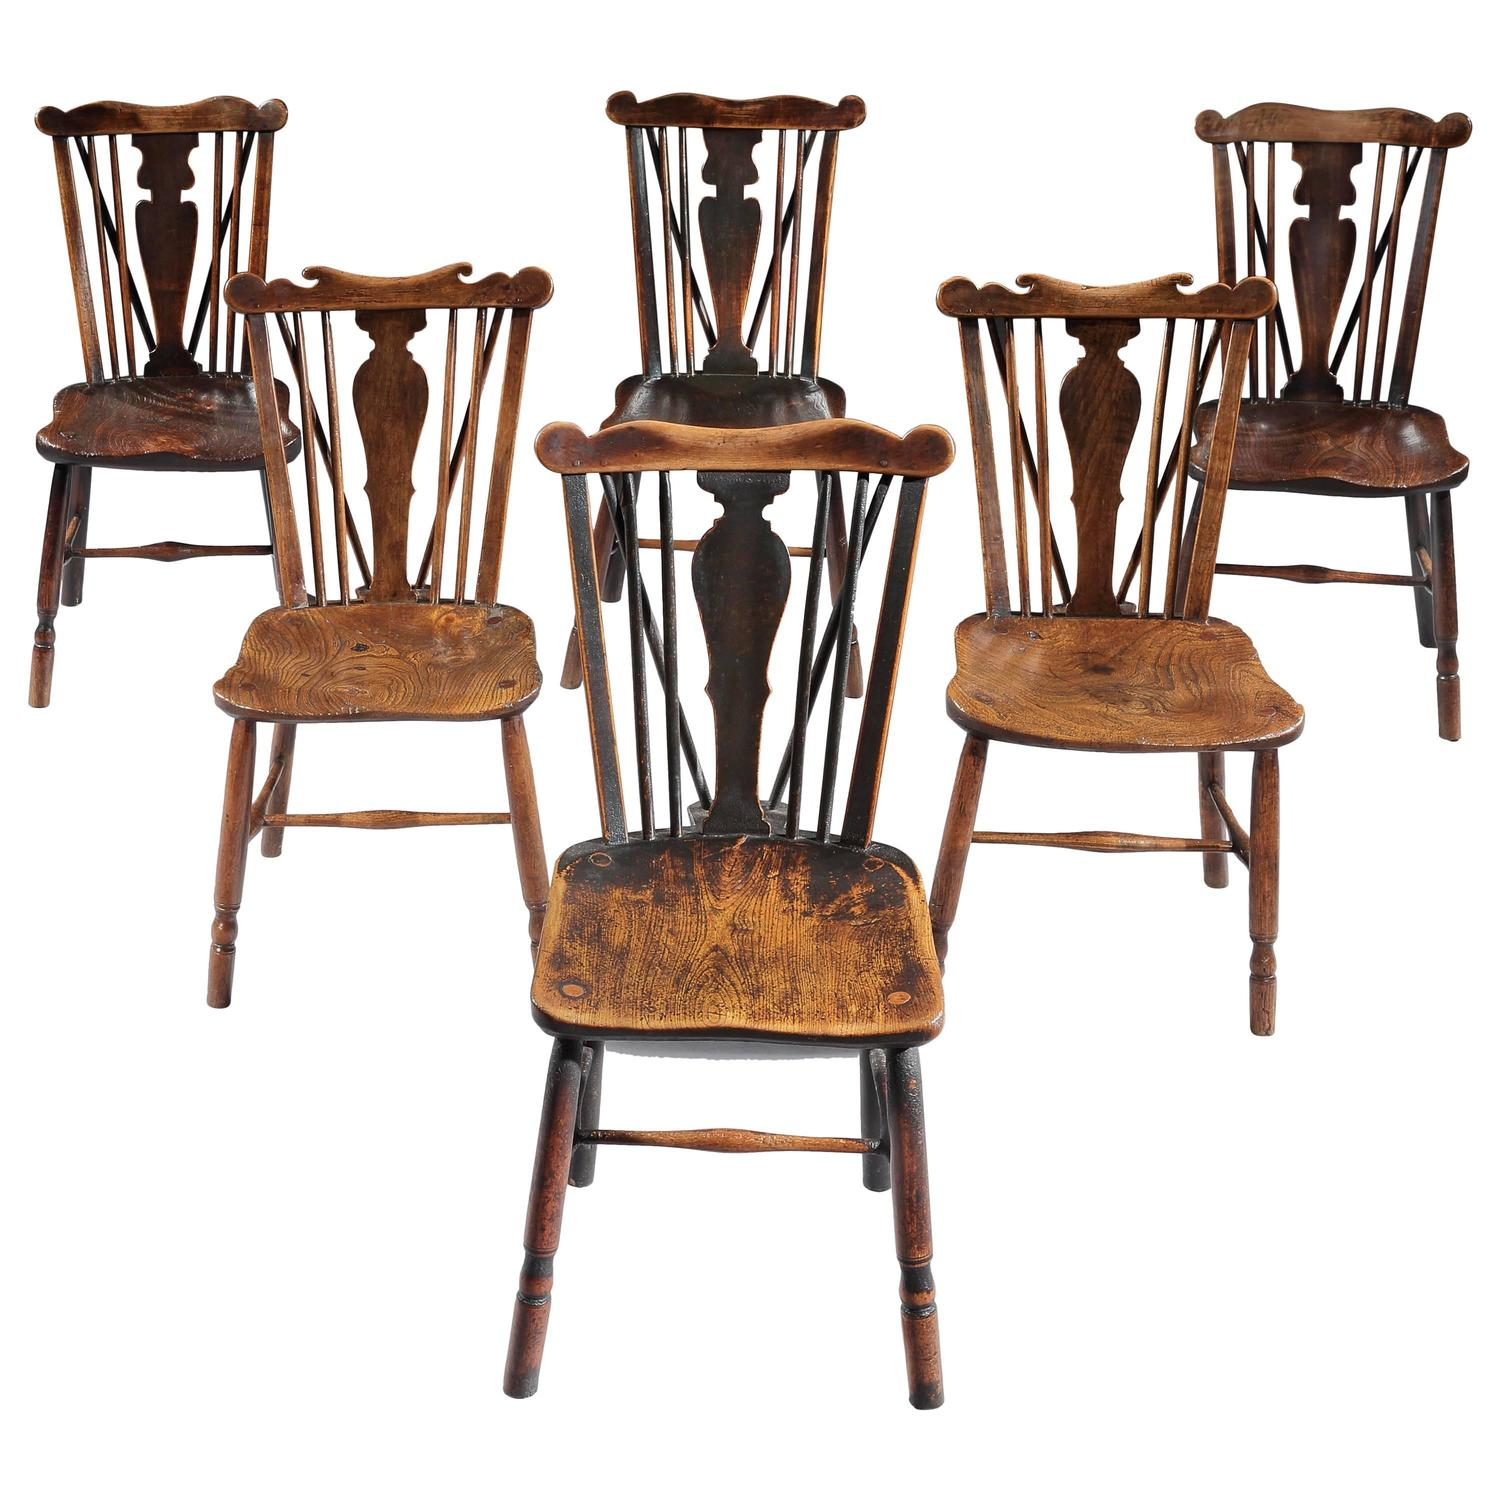 comb back windsor chair white wooden folding chairs for weddings 2 set of six early 19th century